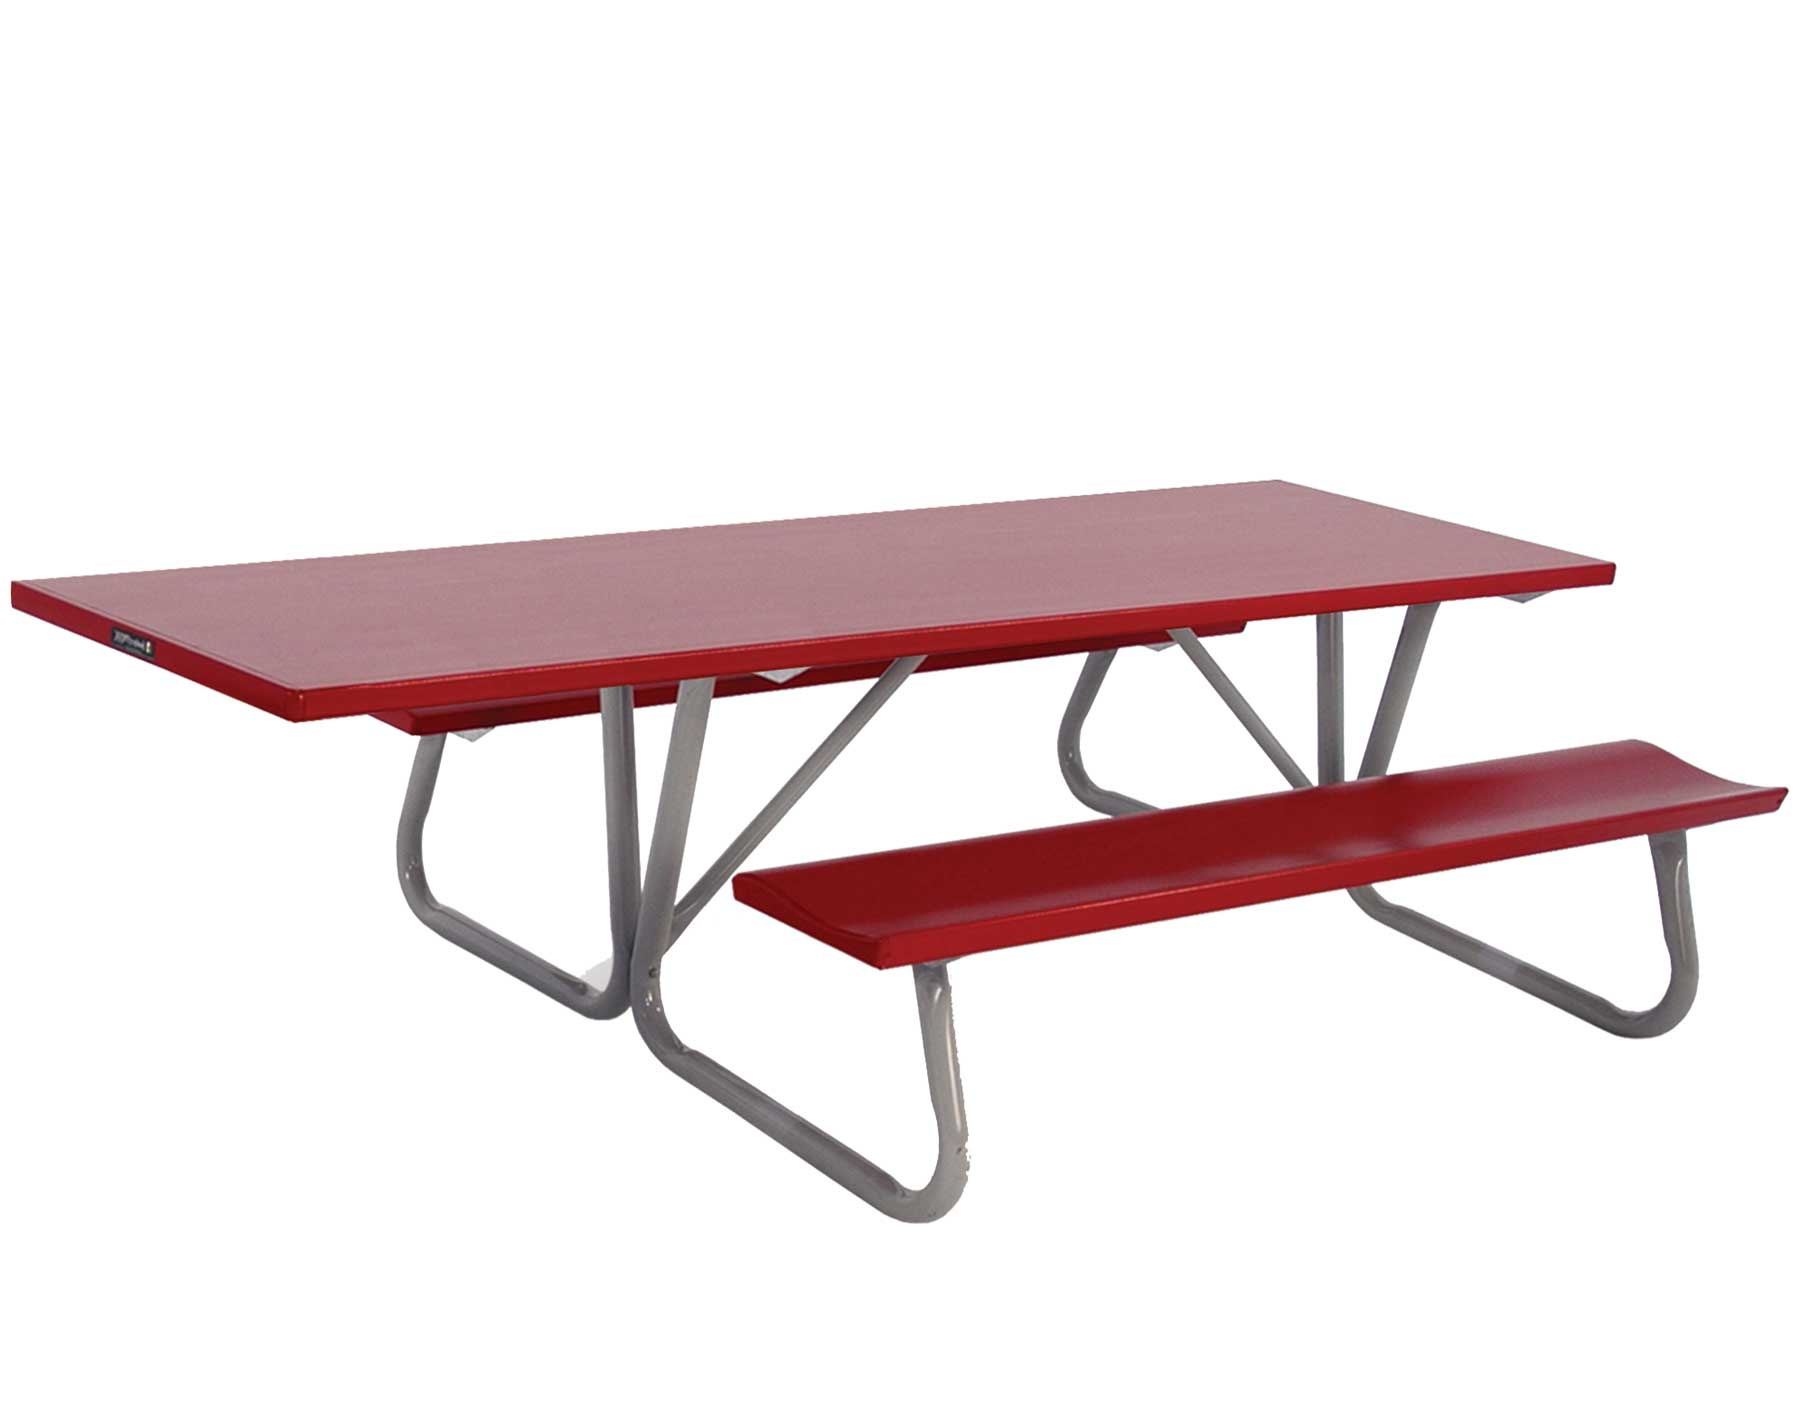 Handicap Accessible Picnic Table - Wheelchair picnic table